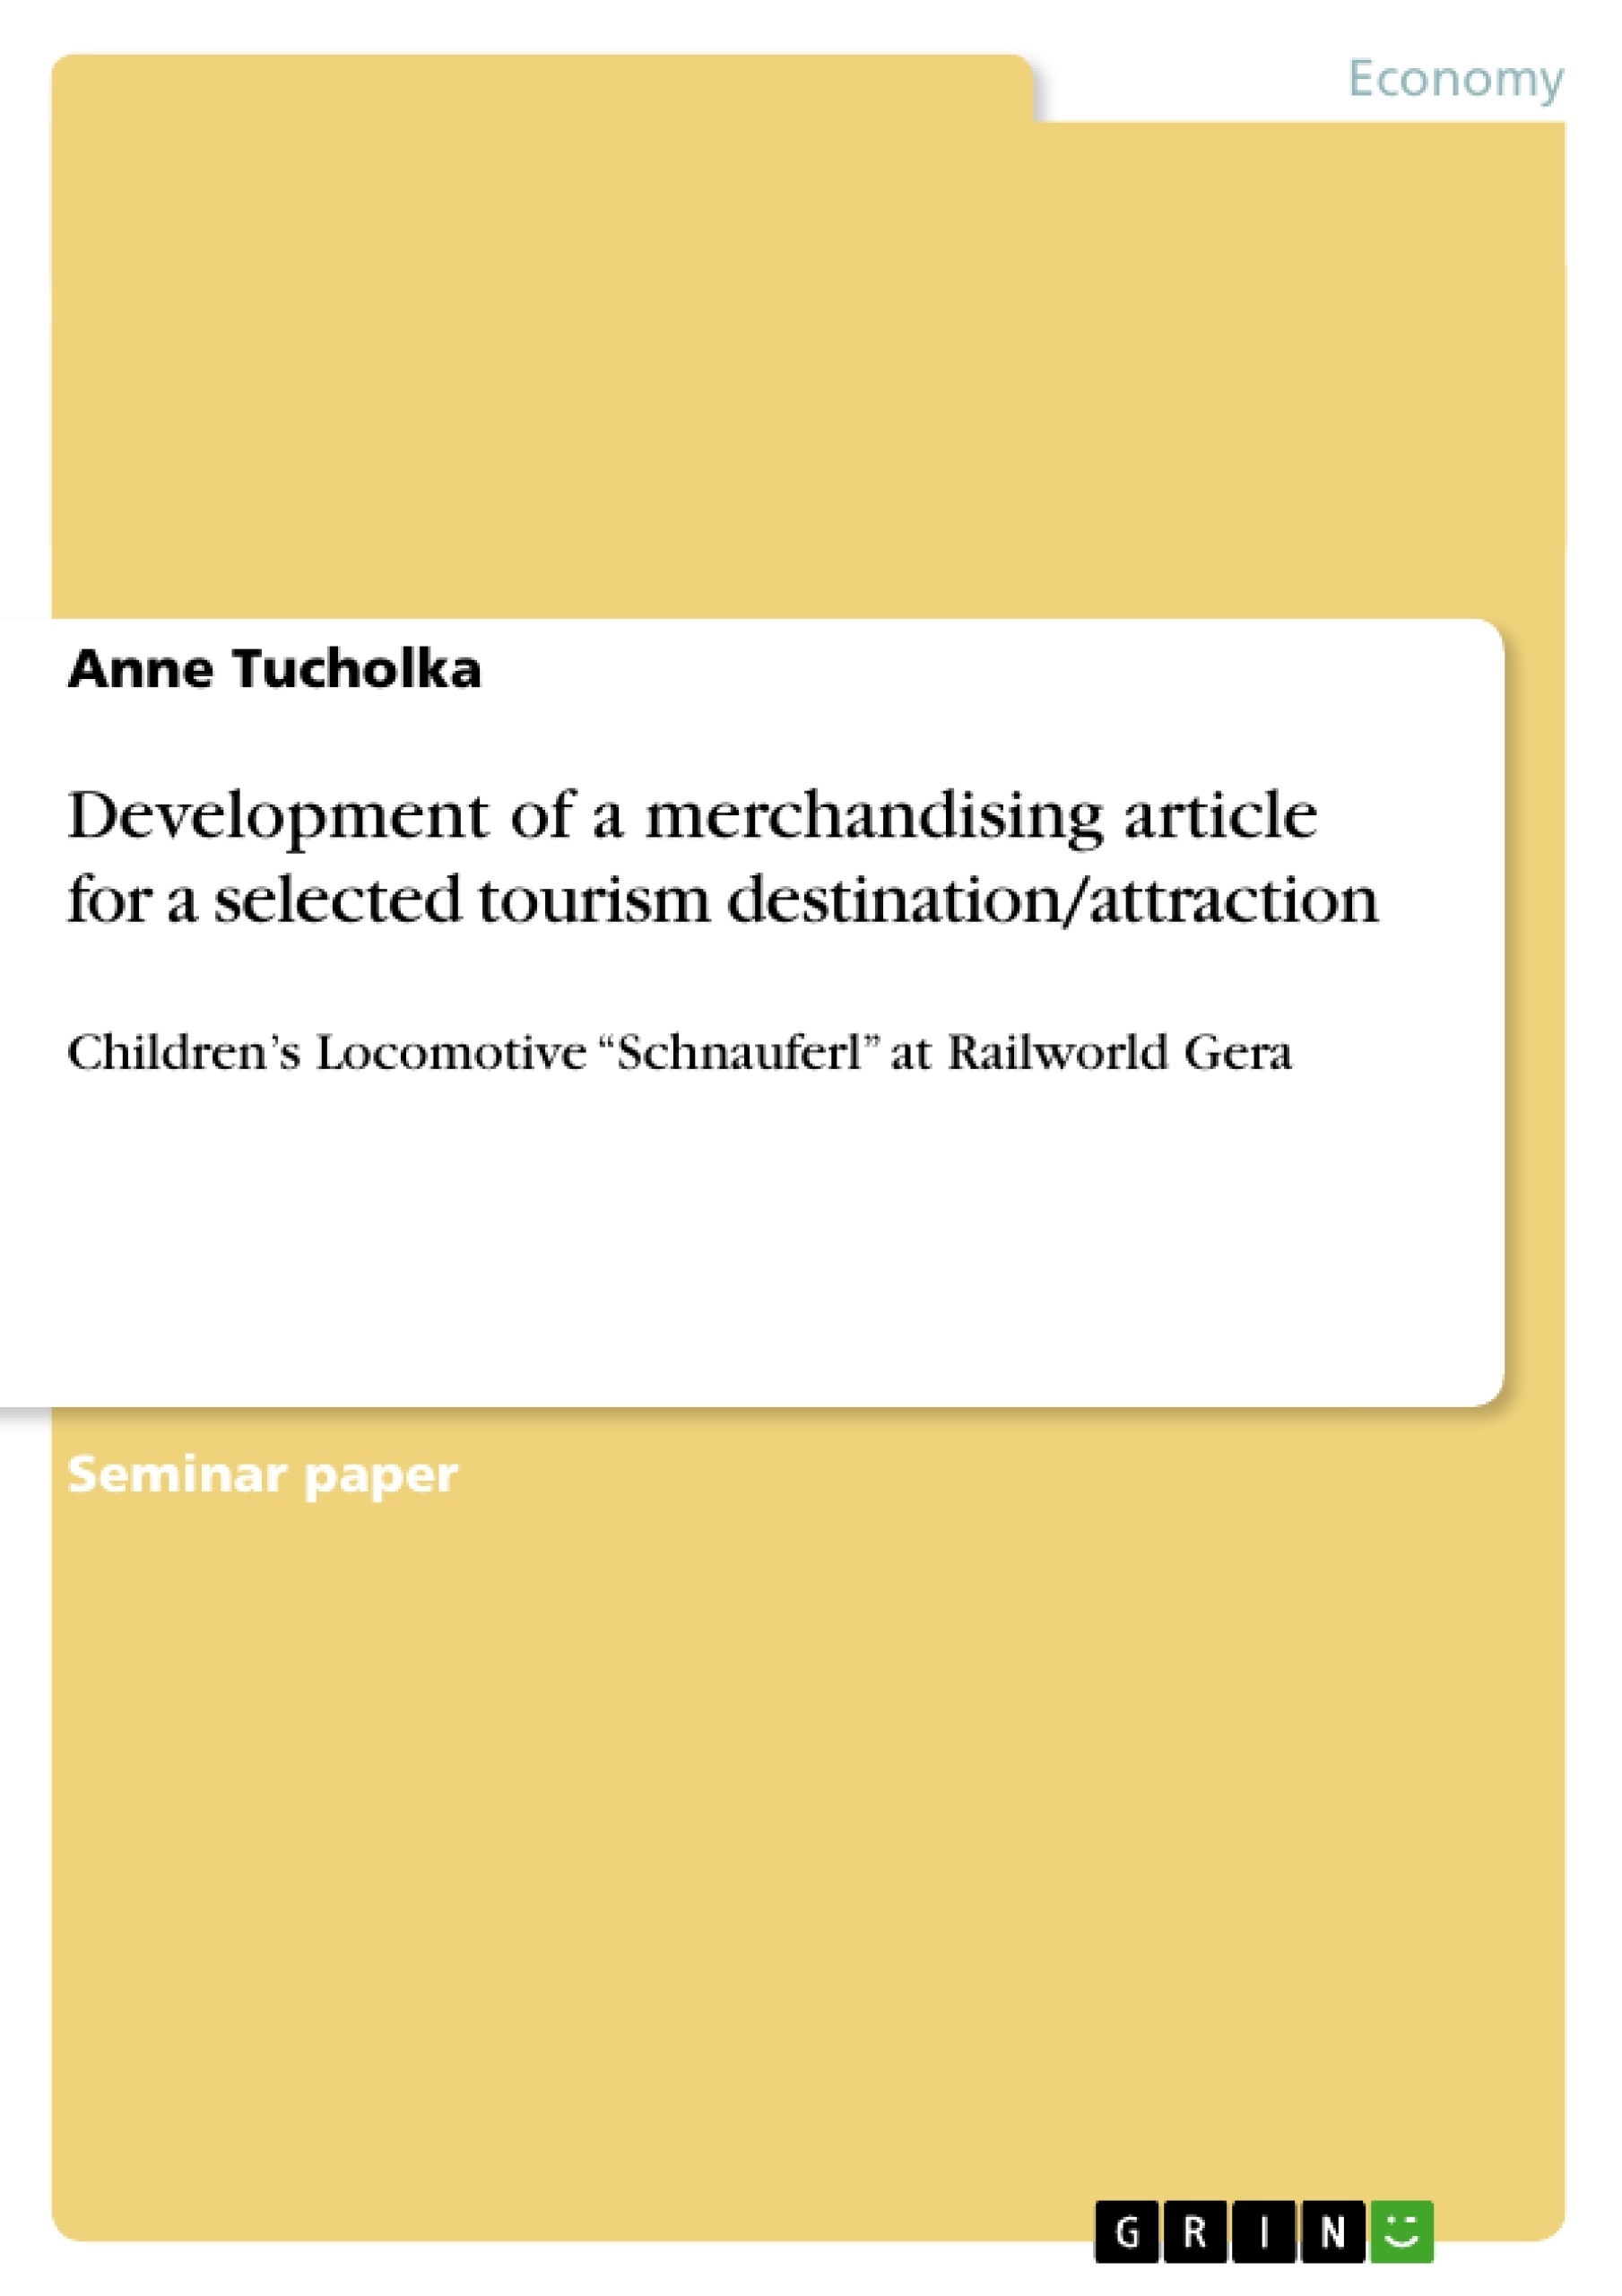 Title: Development of a merchandising article for a selected tourism destination/attraction